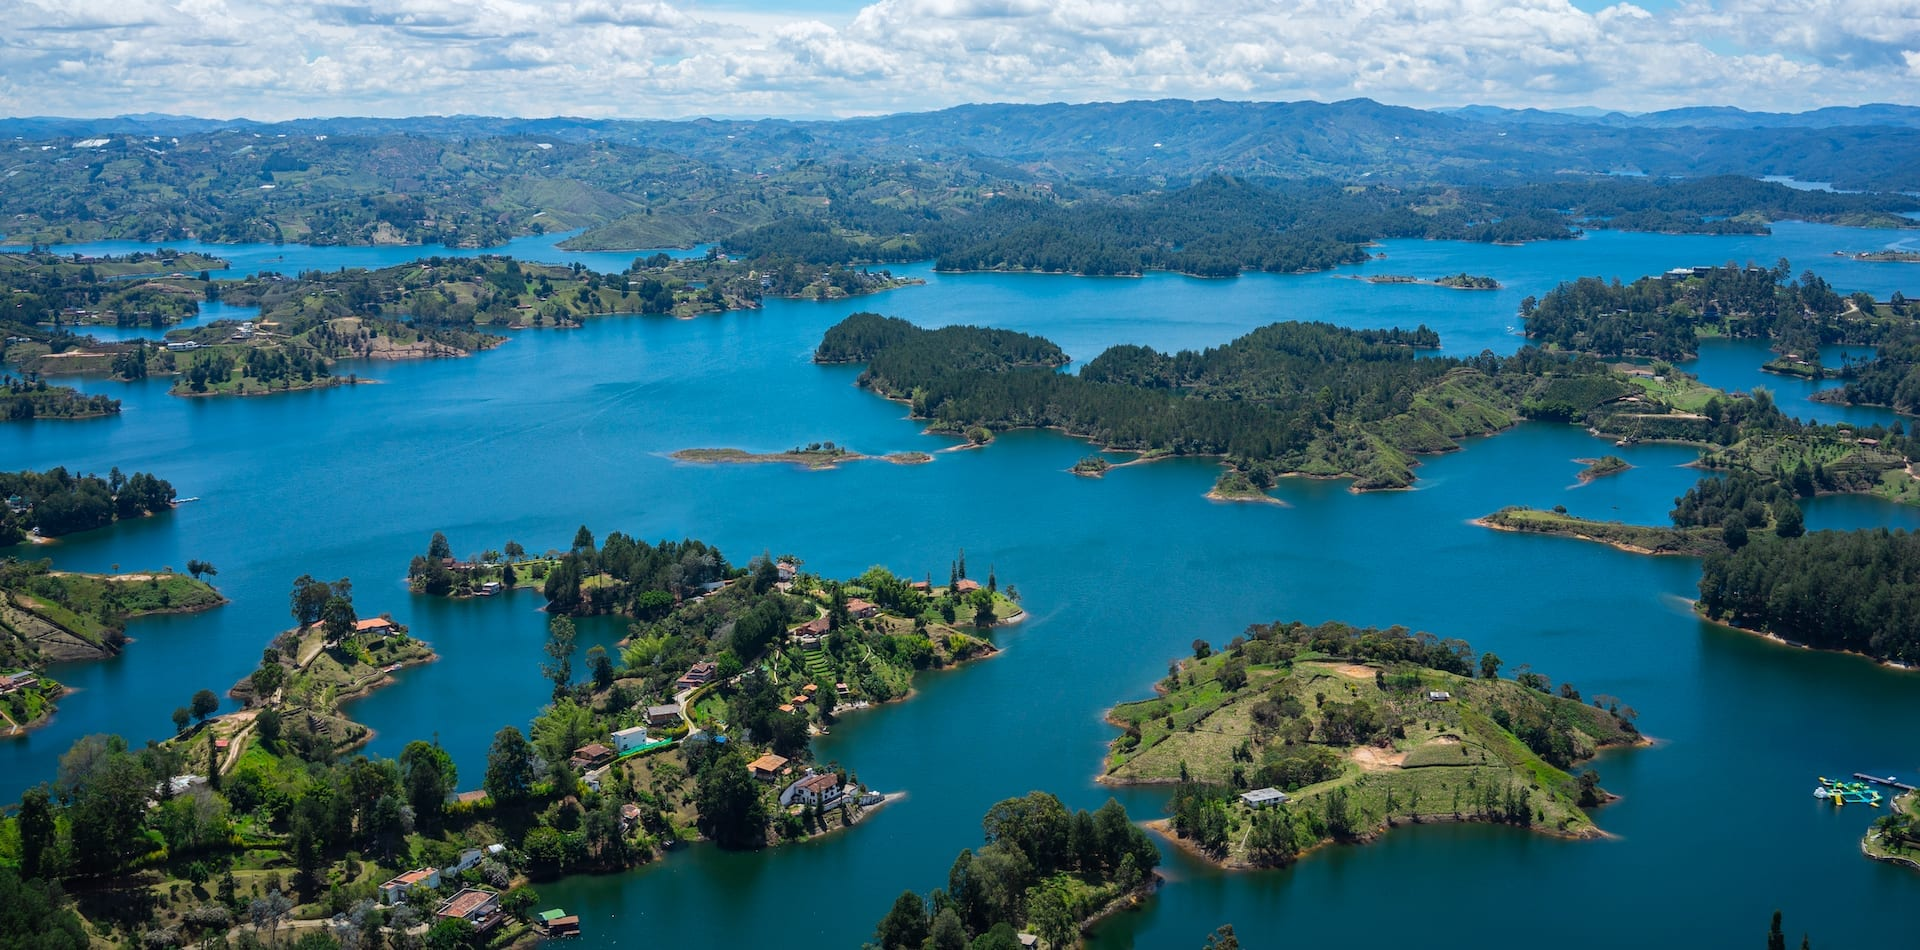 Aerial view over the Guatape islands in Colombia